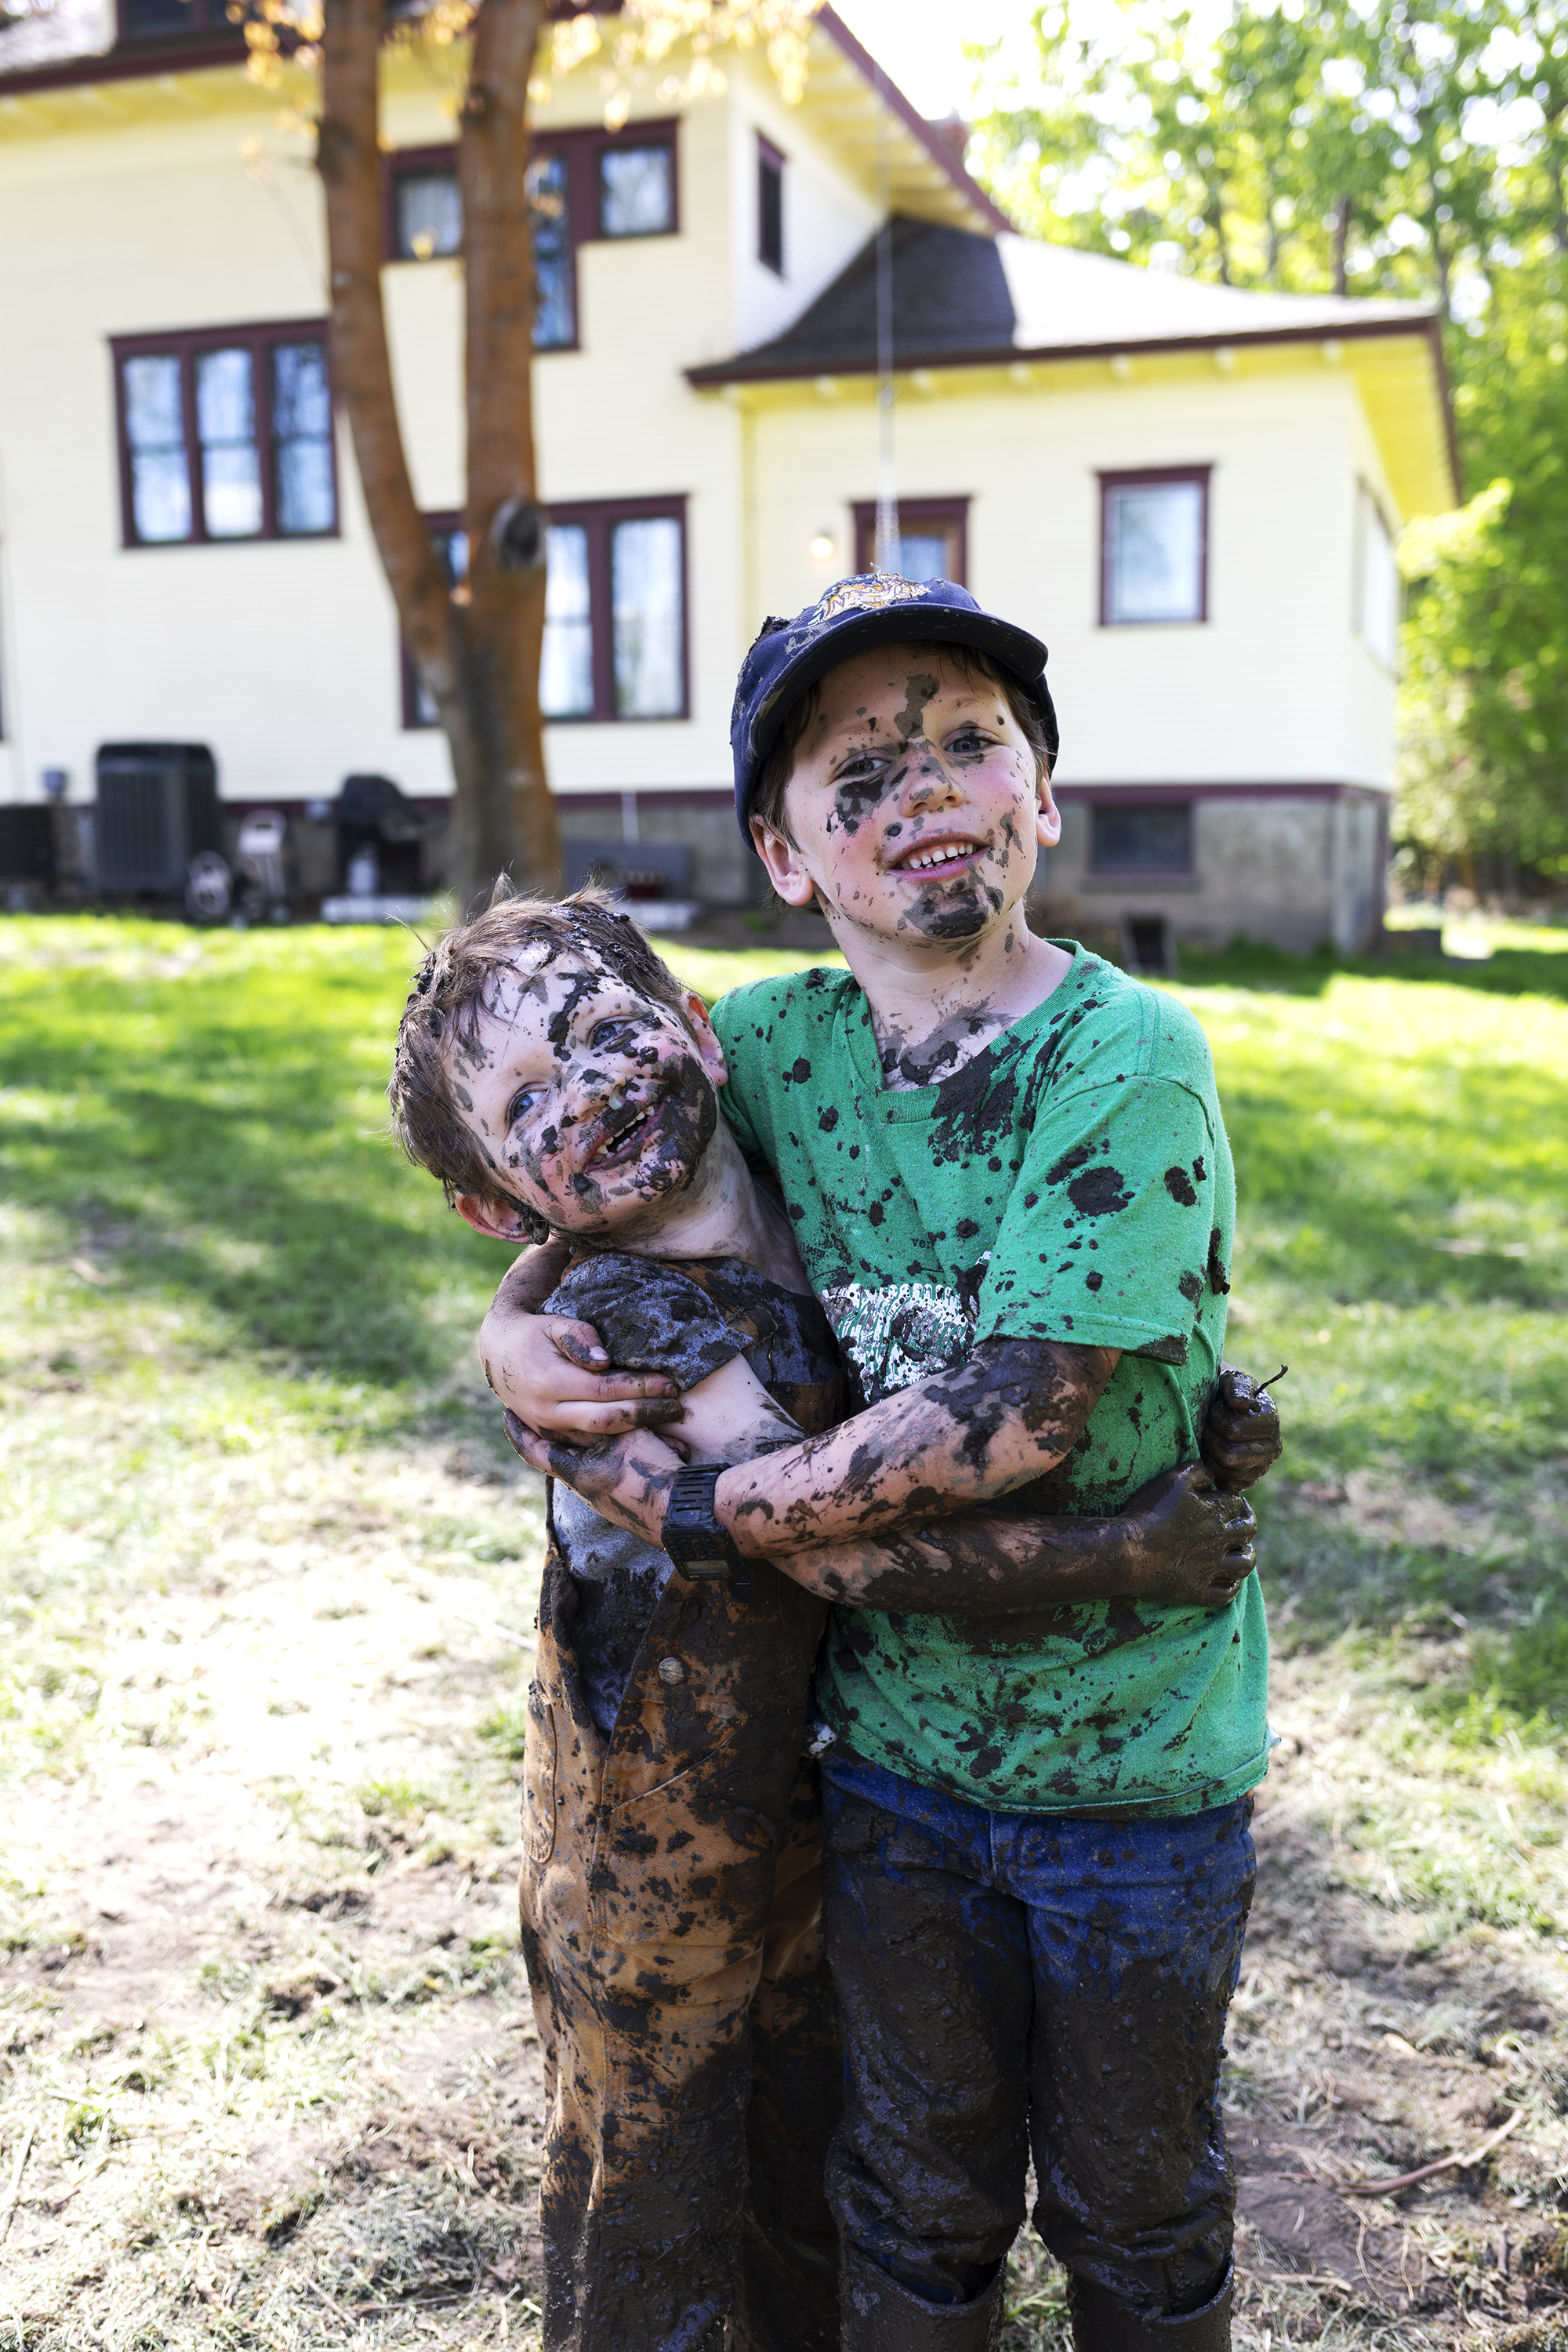 Farmhouse - Brothers in Dirt 05-2019.jpg